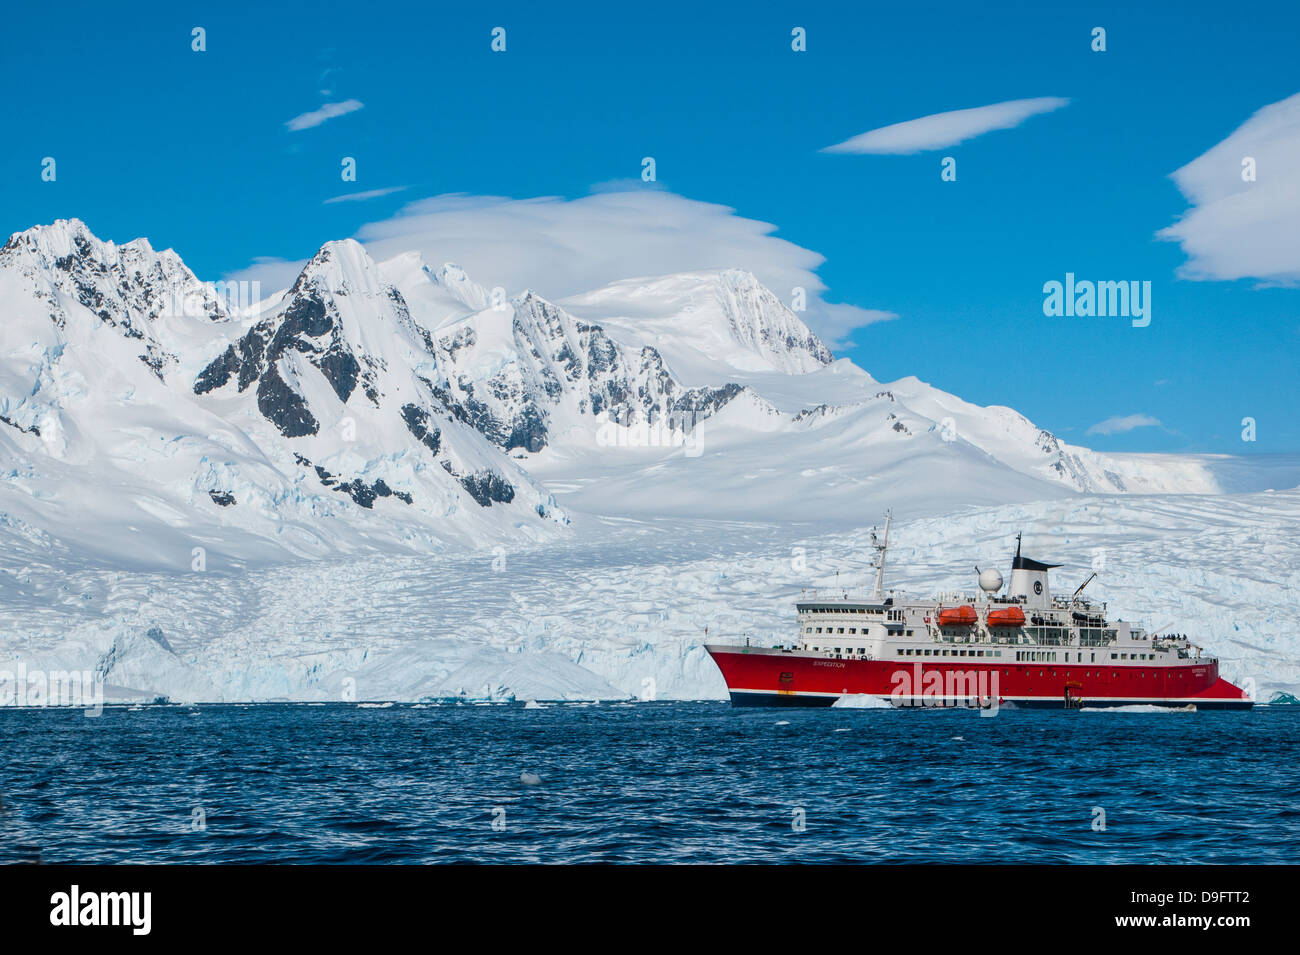 Cruise ship in front of the glaciers of Cierva Cove, Antarctica, Polar Regions - Stock Image